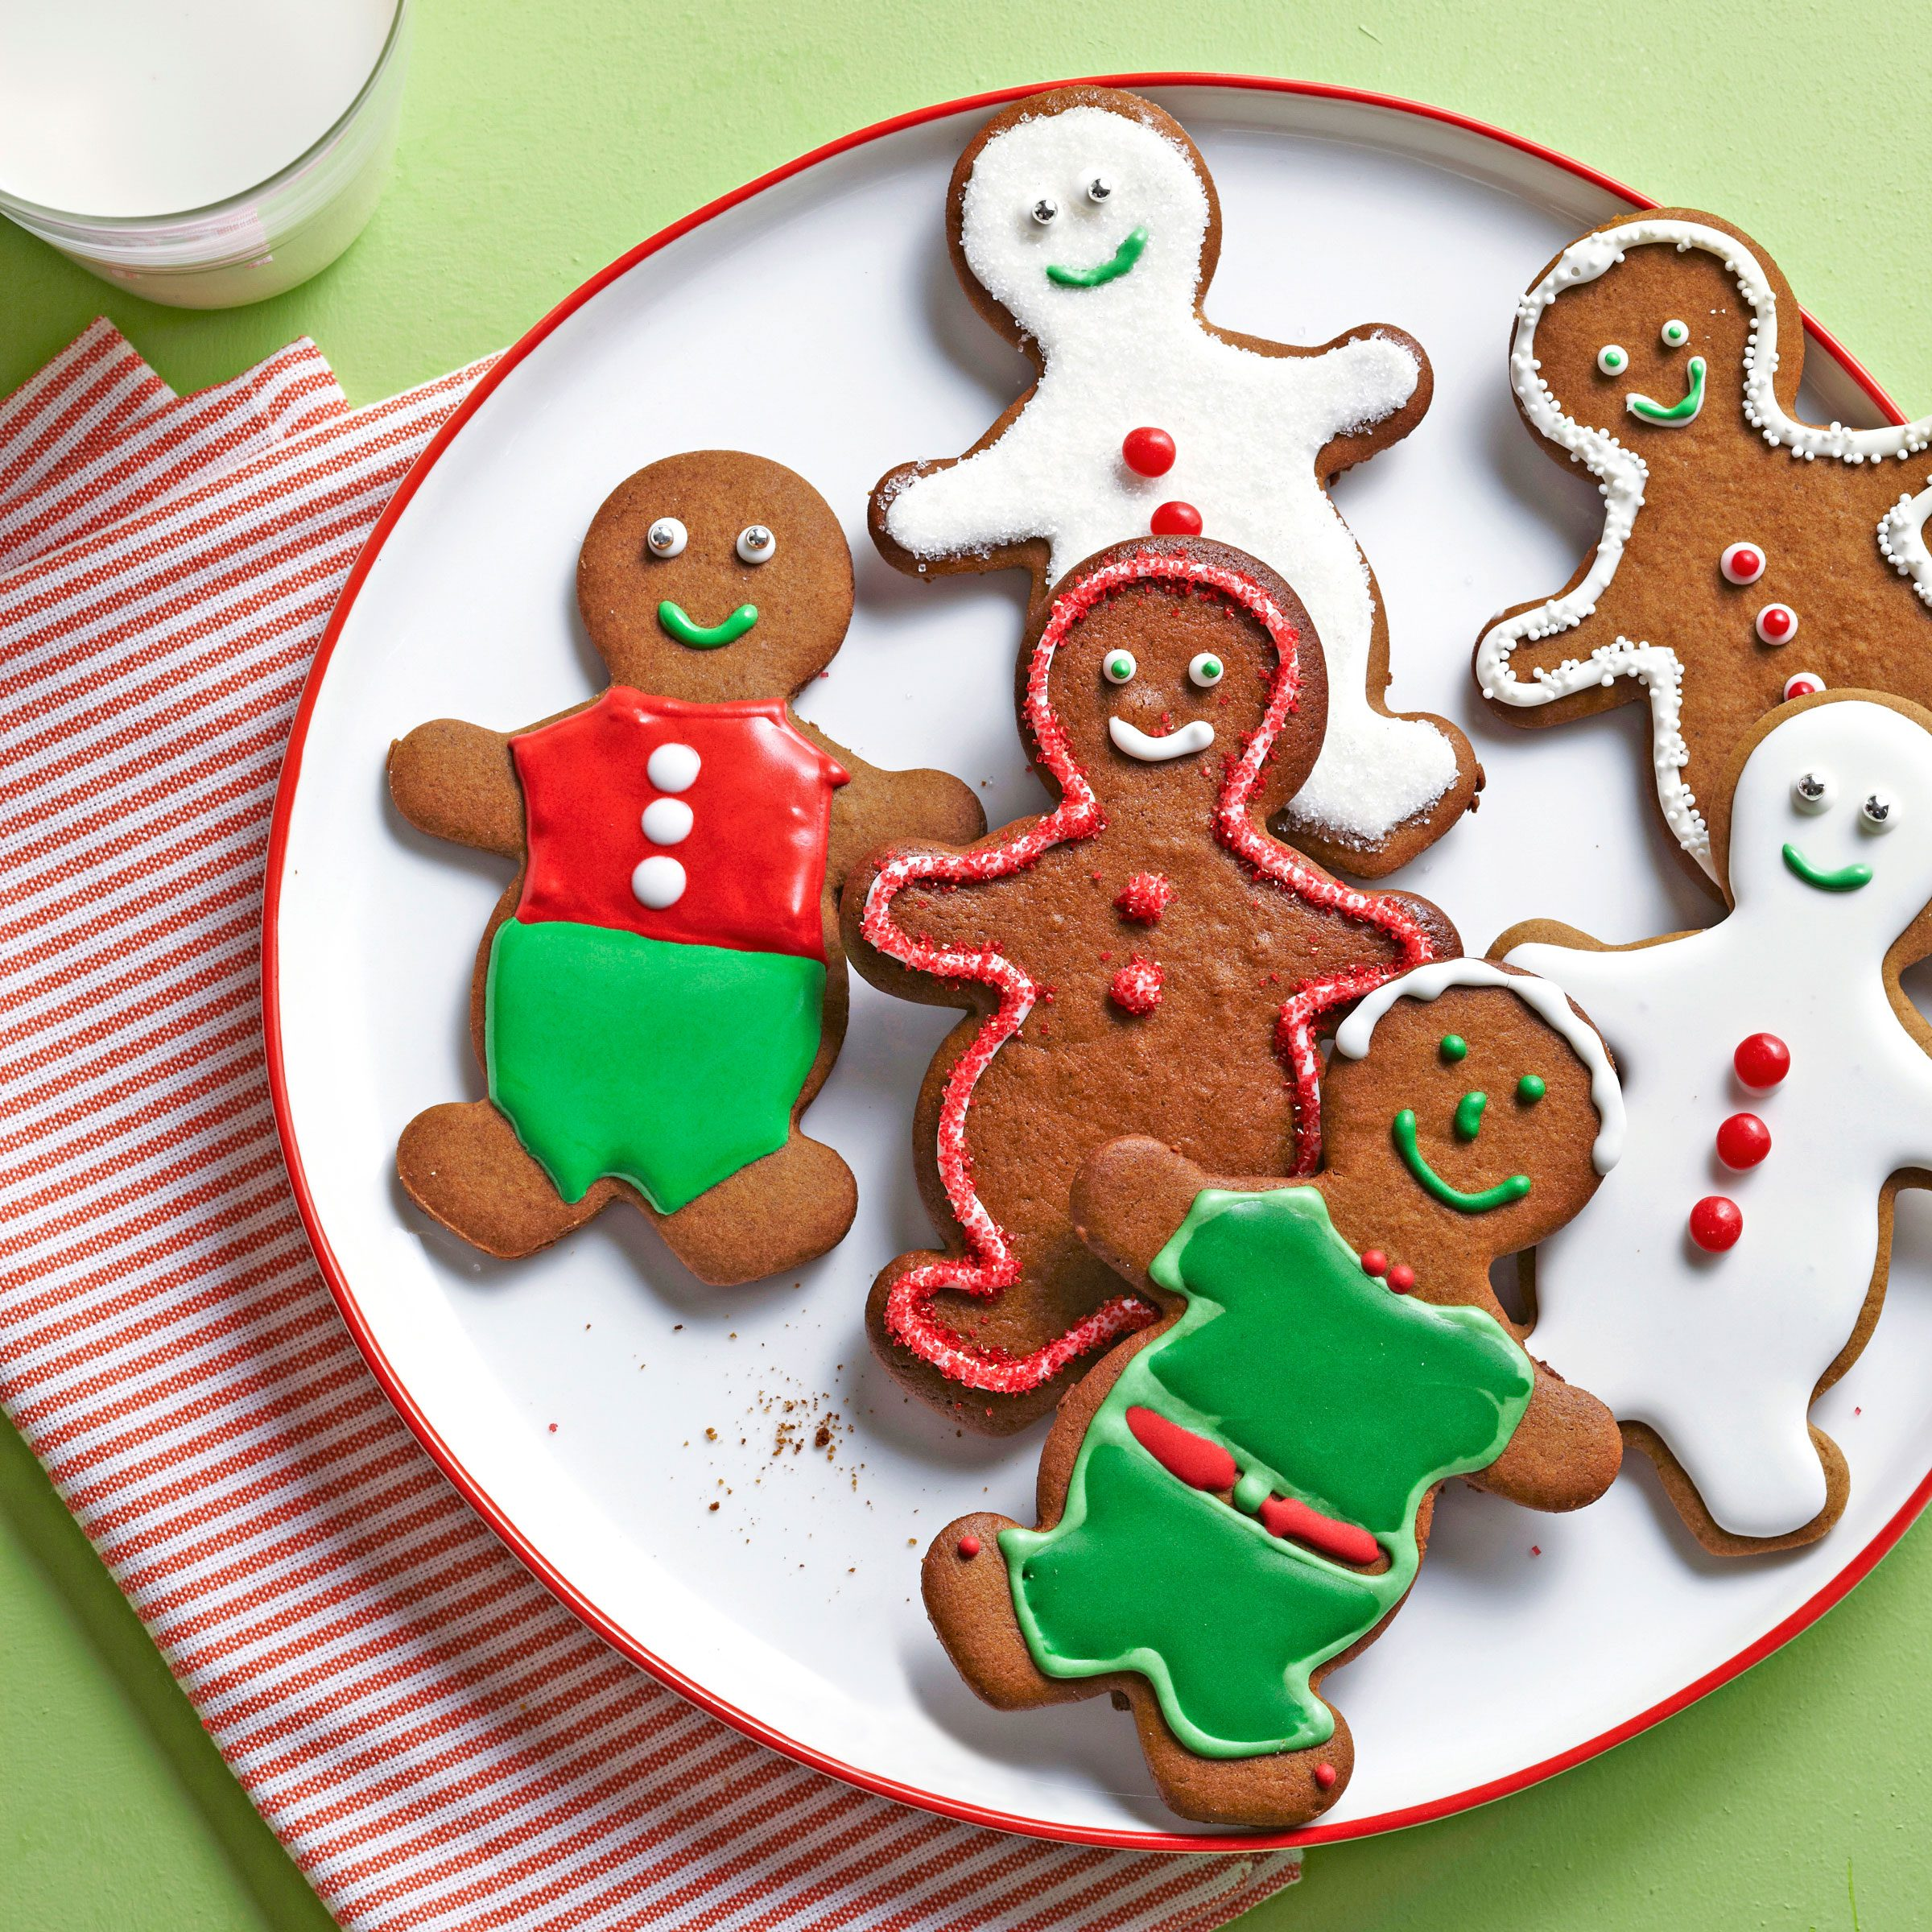 Martha Stewart's Gingerbread Men decorated cookies on a plate next to a glass of milk